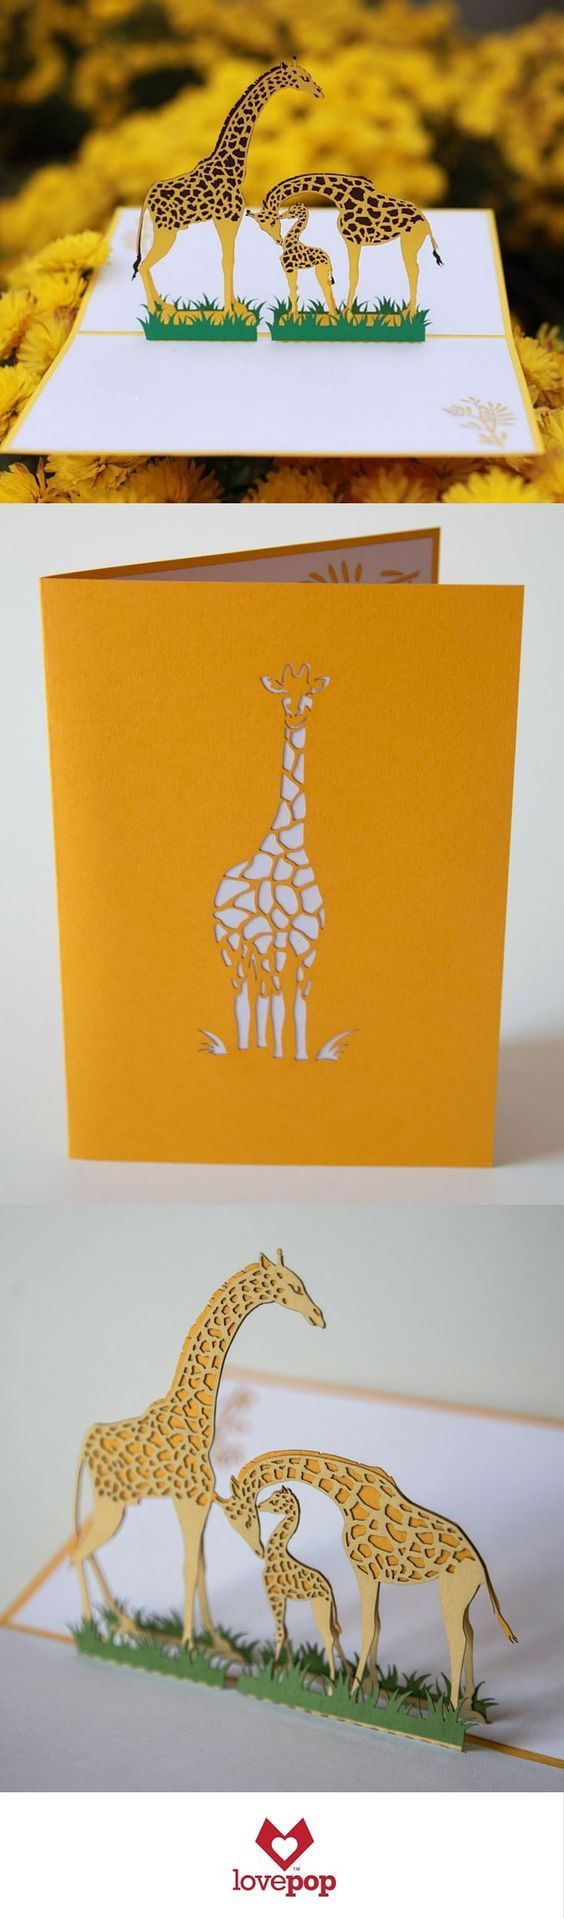 1000 ideas about pop up card templates on pinterest for Kirigami christmas card